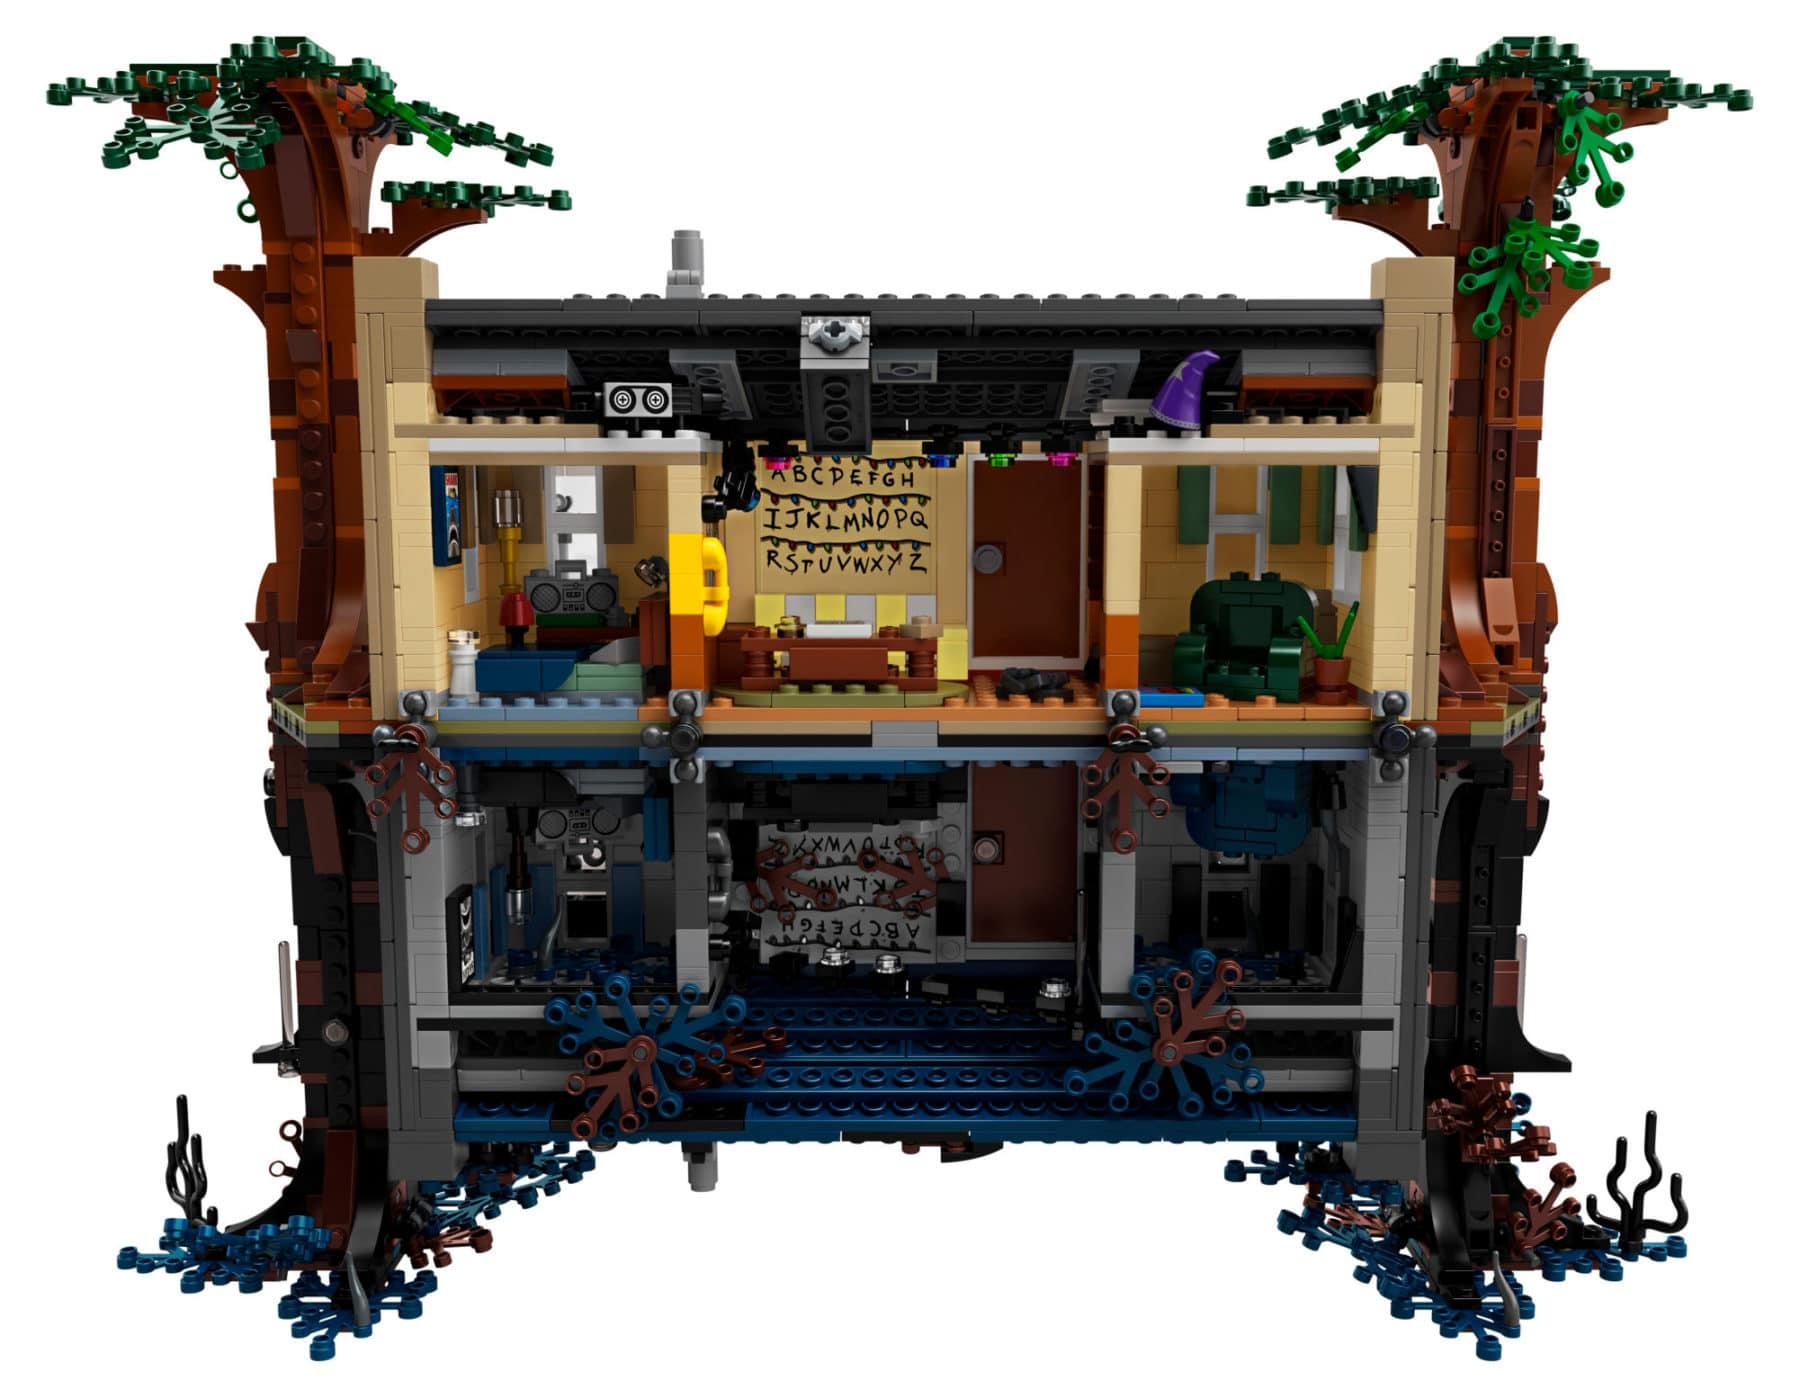 lego-stranger-things-75810-die-andere-seite-2